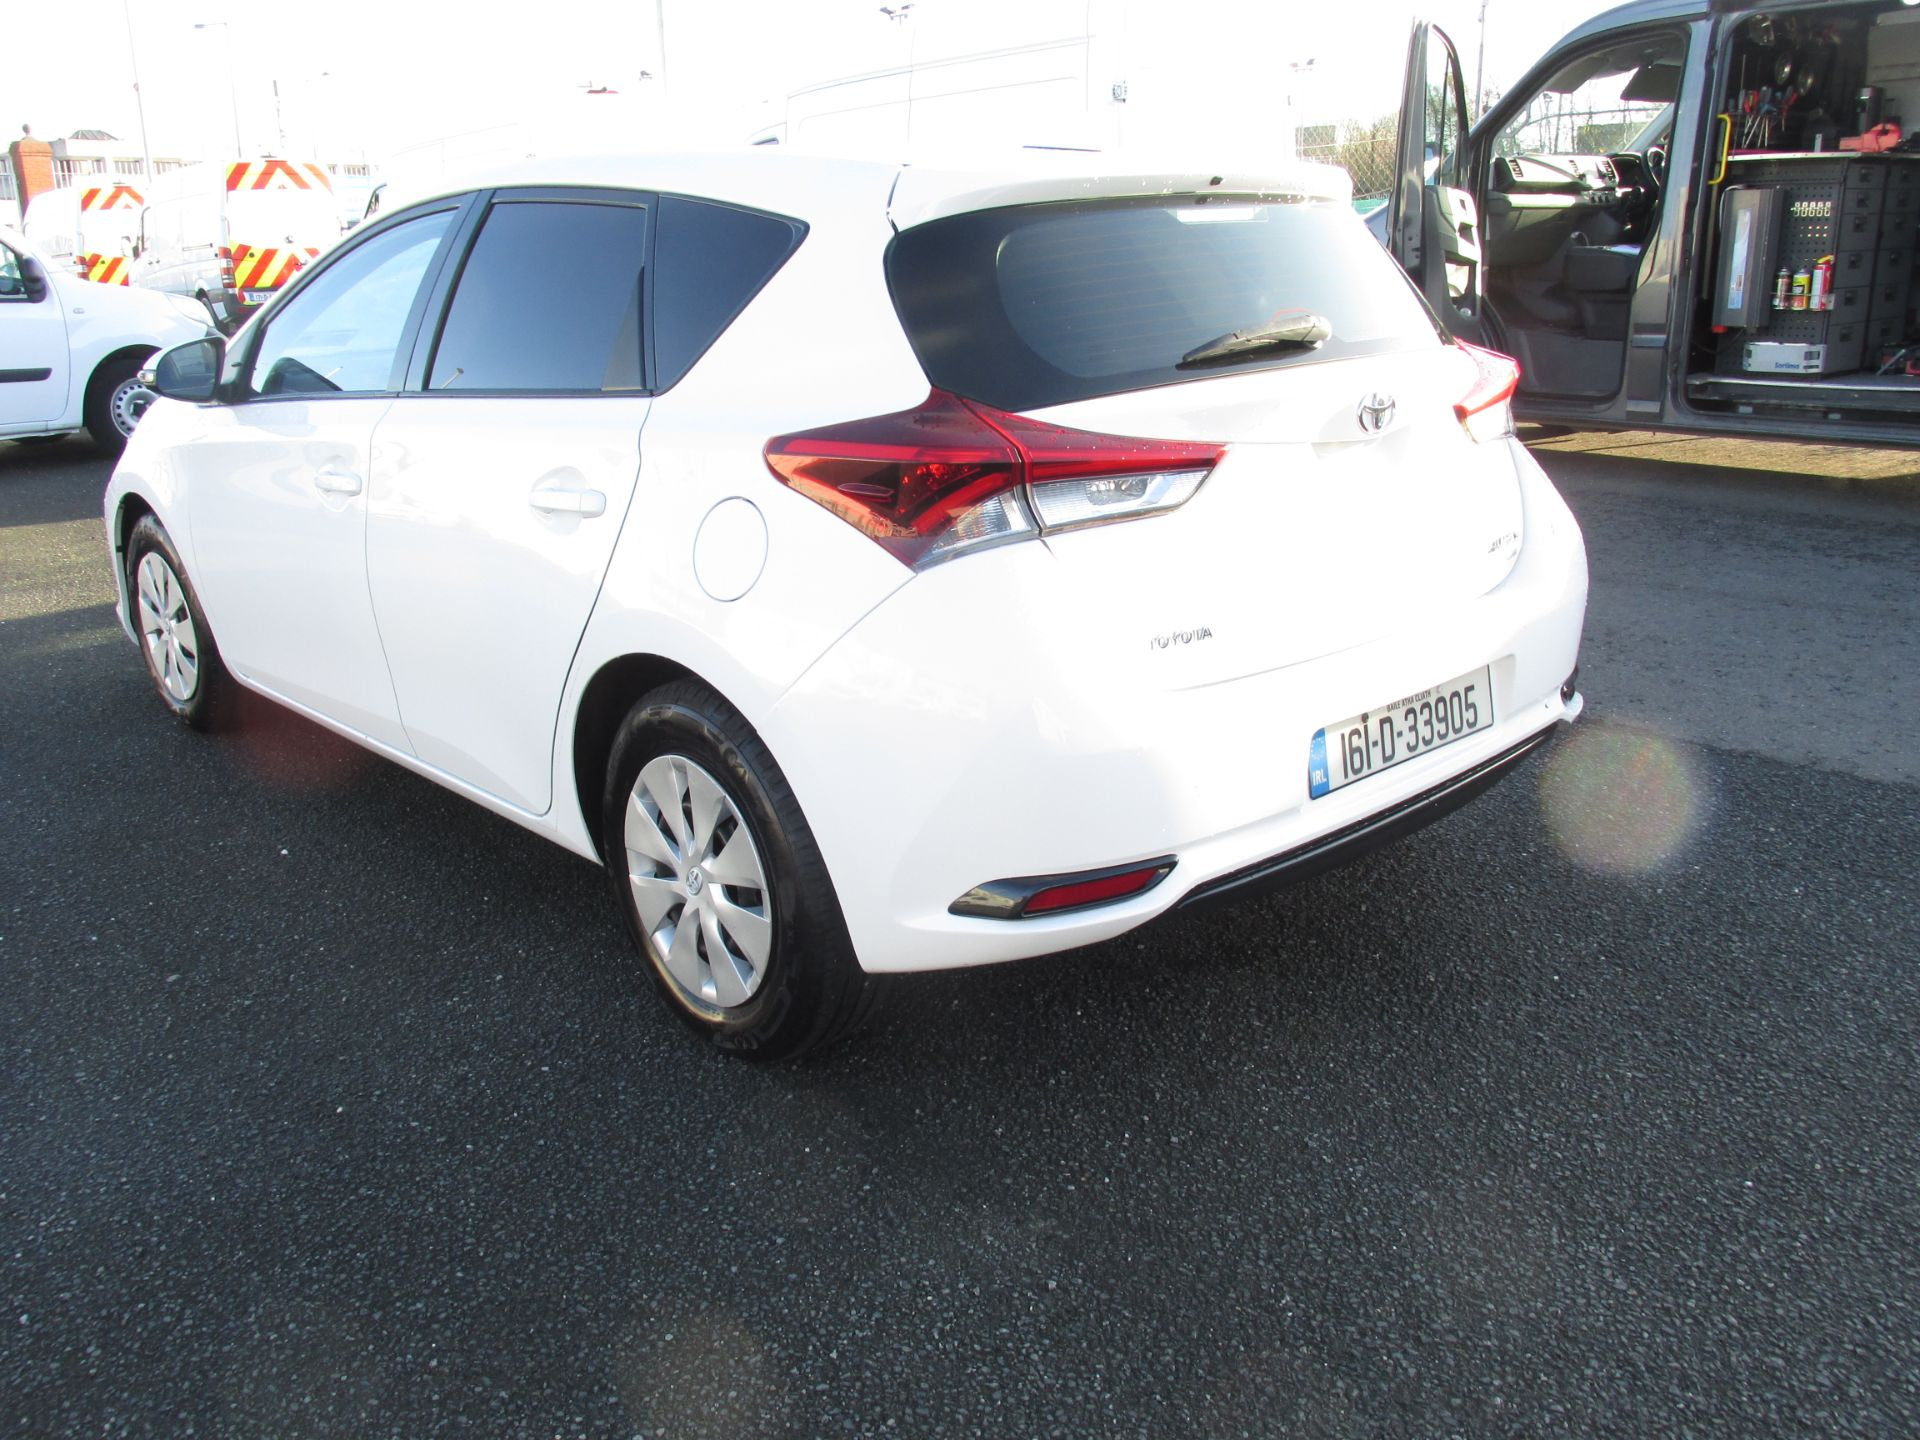 2016 Toyota Auris 1.4d-4d Terra 4DR click and collect call sales for more info (161D33905) Image 5